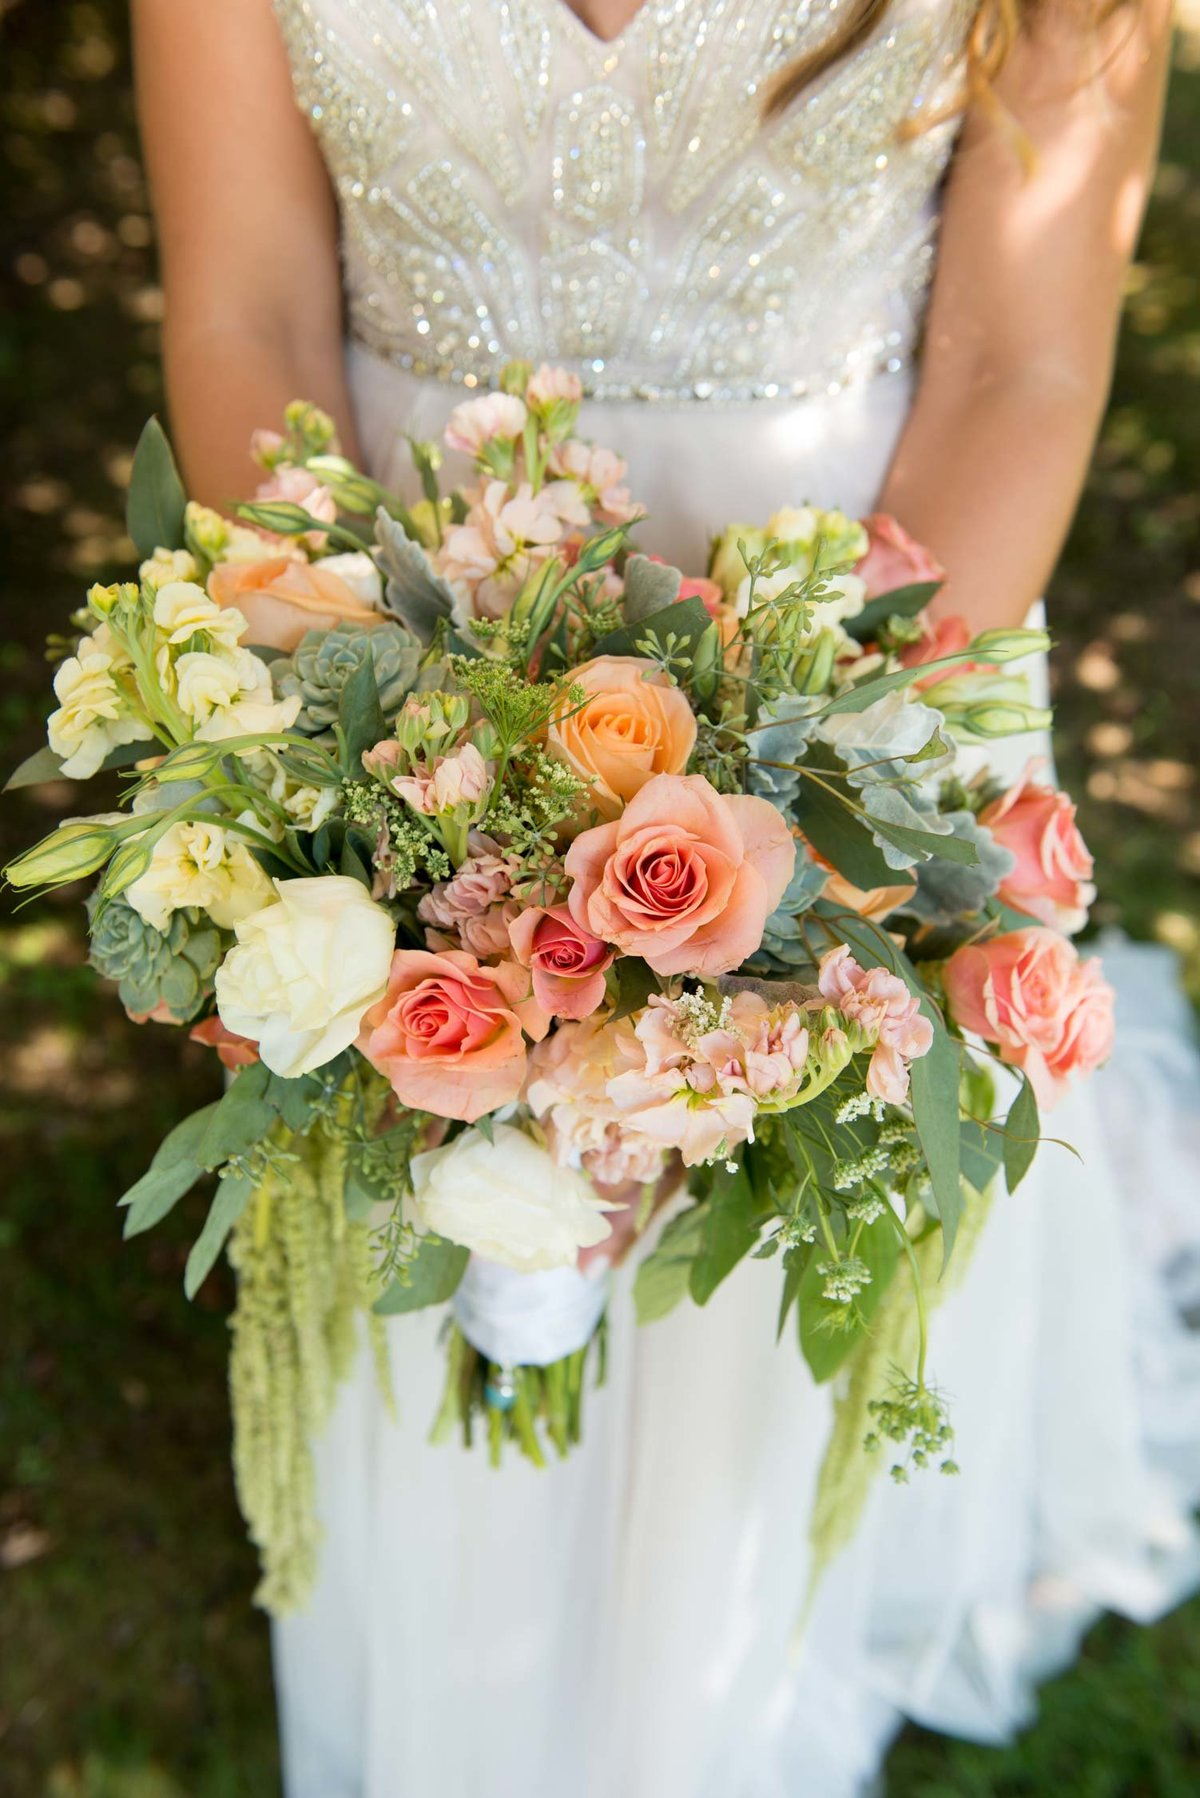 Bride's dress and bouquet at Flowerfield